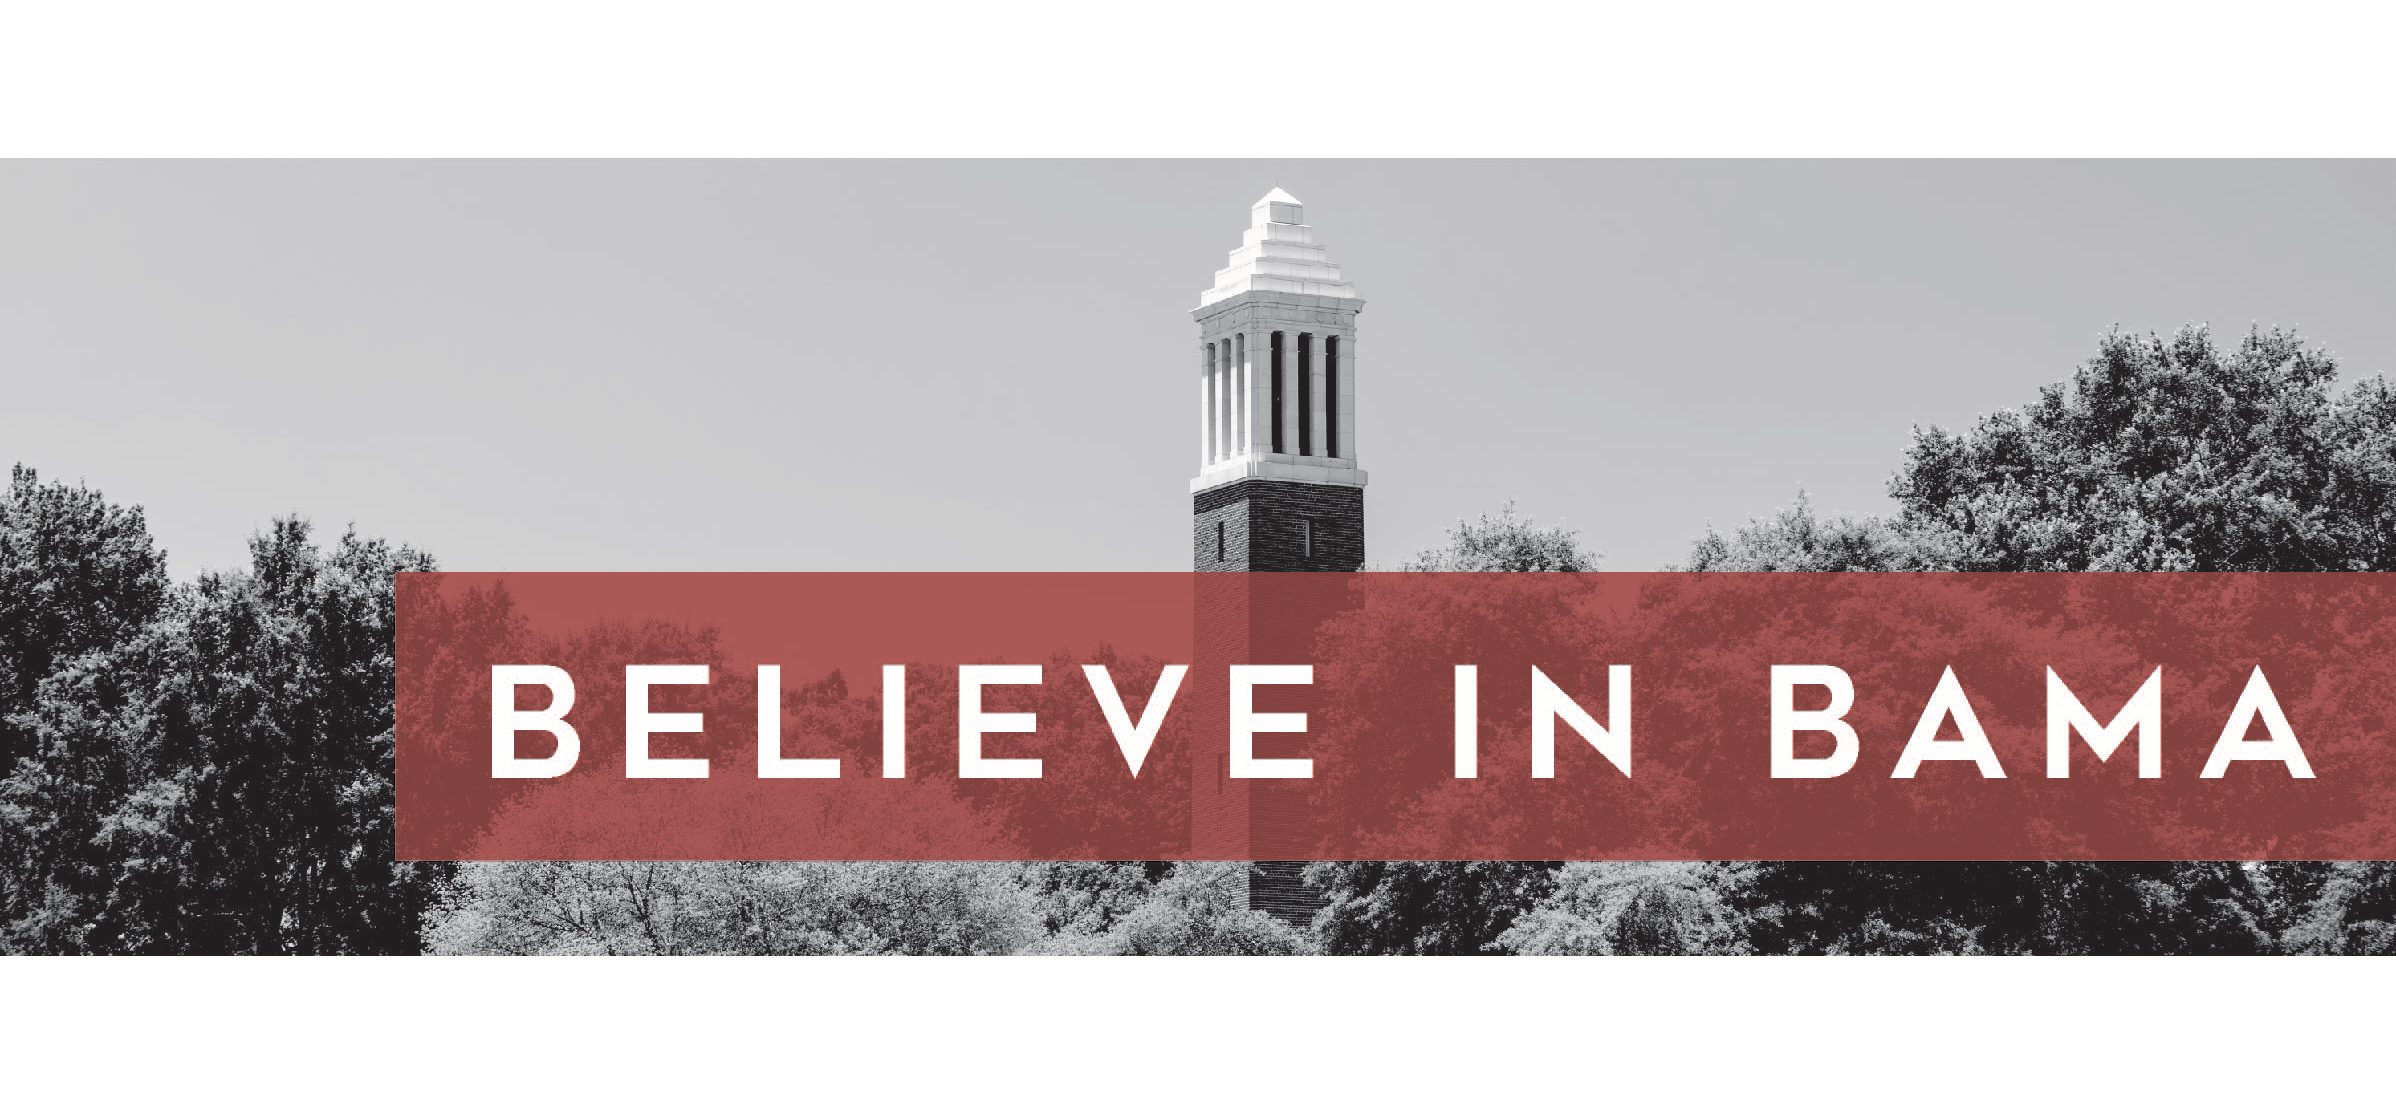 Church Planting in Tuscaloosa - We are planting a new church in Tuscaloosa to help reach the 30,000 lost and disengaged students at the University of Alabama, as well as those across the city.Why Tuscaloosa? In the last decade, the University of Alabama and the greater Tuscaloosa area have experienced a season of dramatic growth and success. As enrollment continues to grow, the need for new mission-focused churches grows with it. Every year nearly 10,000 students move to Tuscaloosa. More than 5,000 will not know Christ. This new church will have a strong focus on engaging those students with the gospel, discipling them, and sending them out as kingdom-minded men and women focused on impacting the world for Christ.For more information visit www.BelieveInBama.com